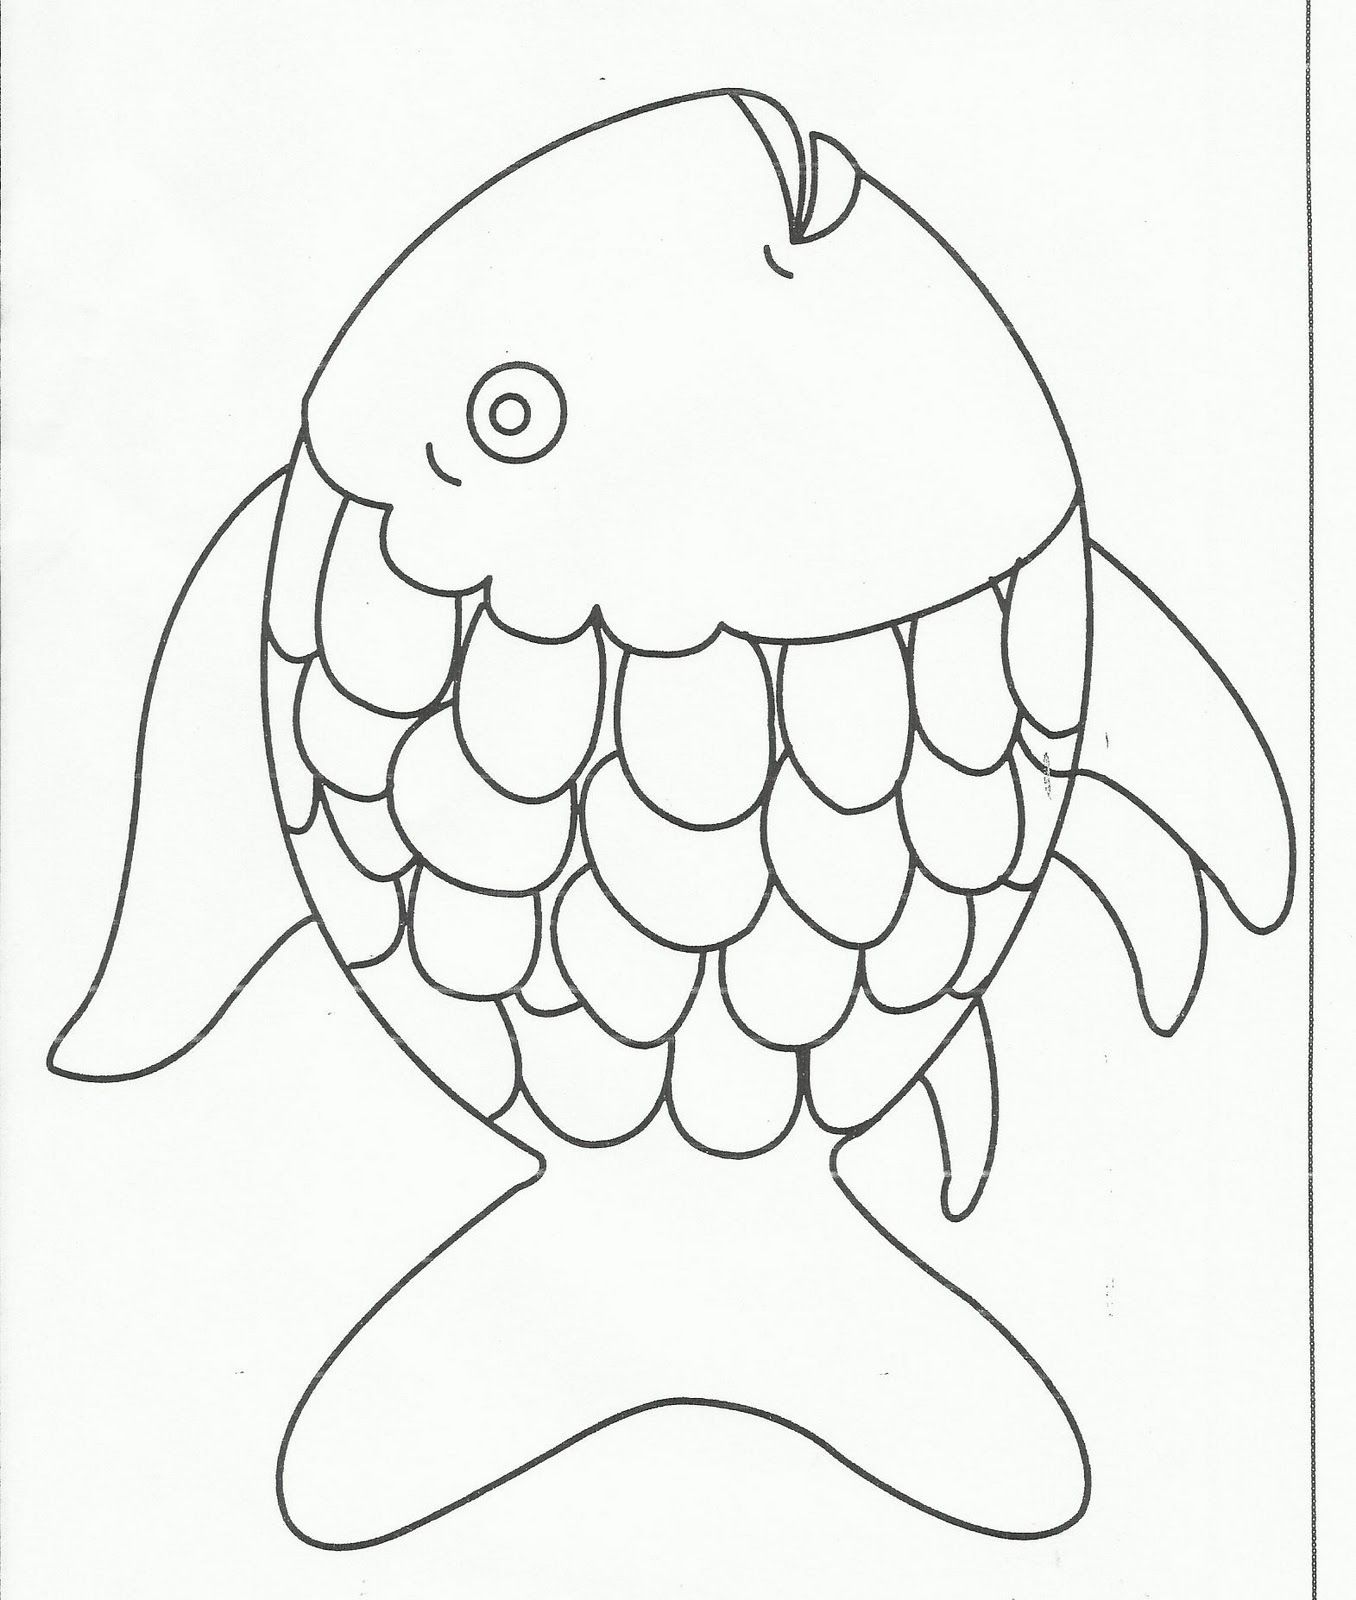 Rainbow fish coloring page free large images camp4 for Rainbow fish pictures